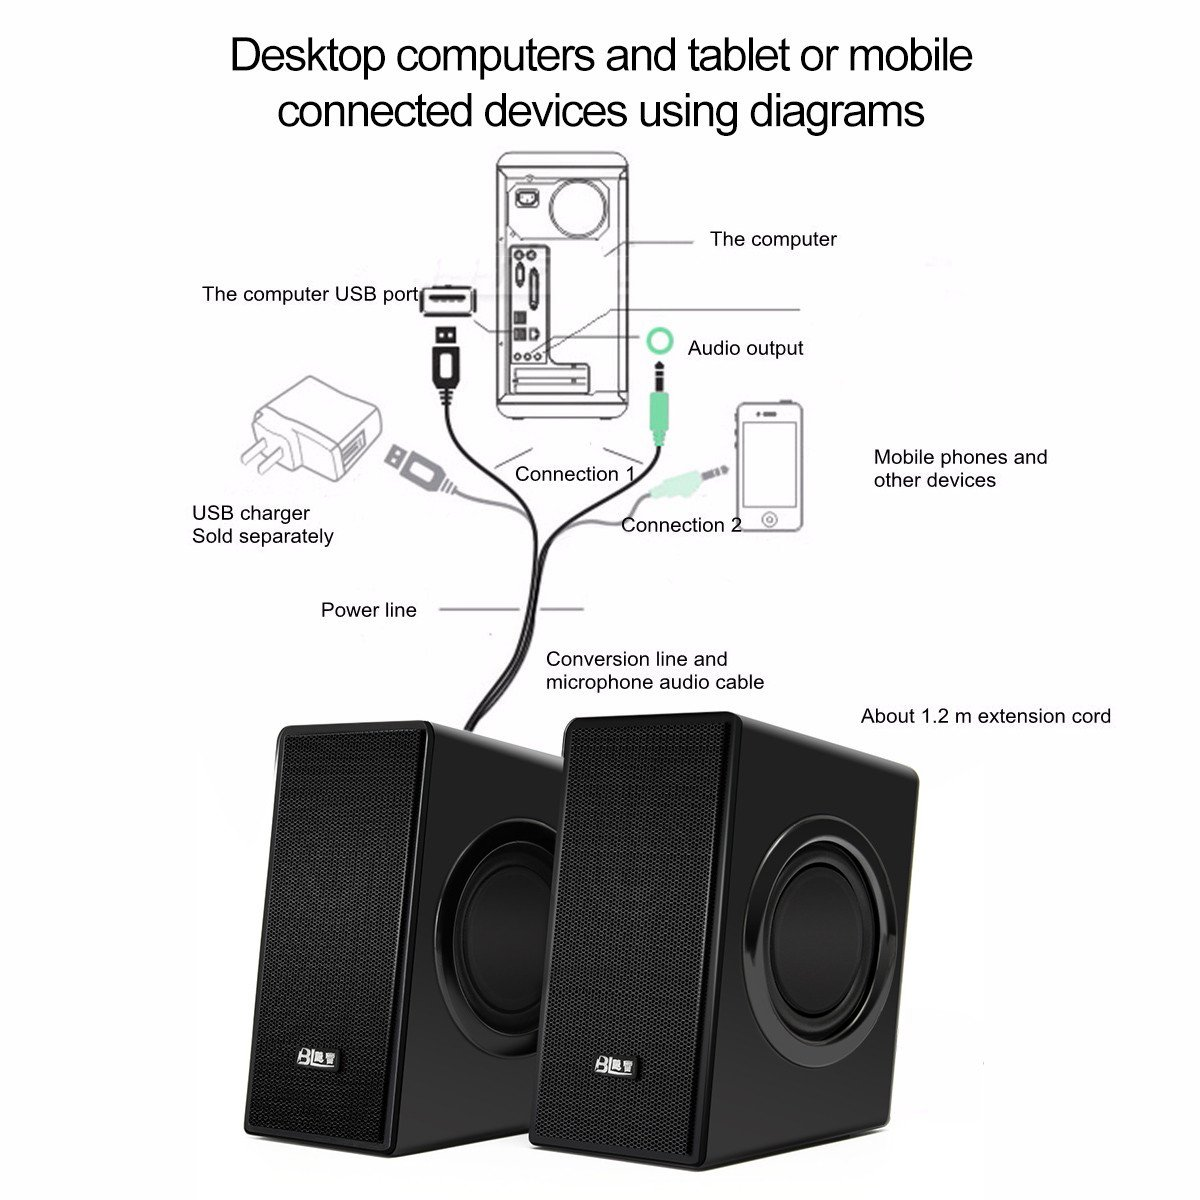 Logitech 2 1 Computer Speakers Wiring Diagram 45 Usb Speaker Sl1200 Amazon Com Elegiant Powered 21 Pc